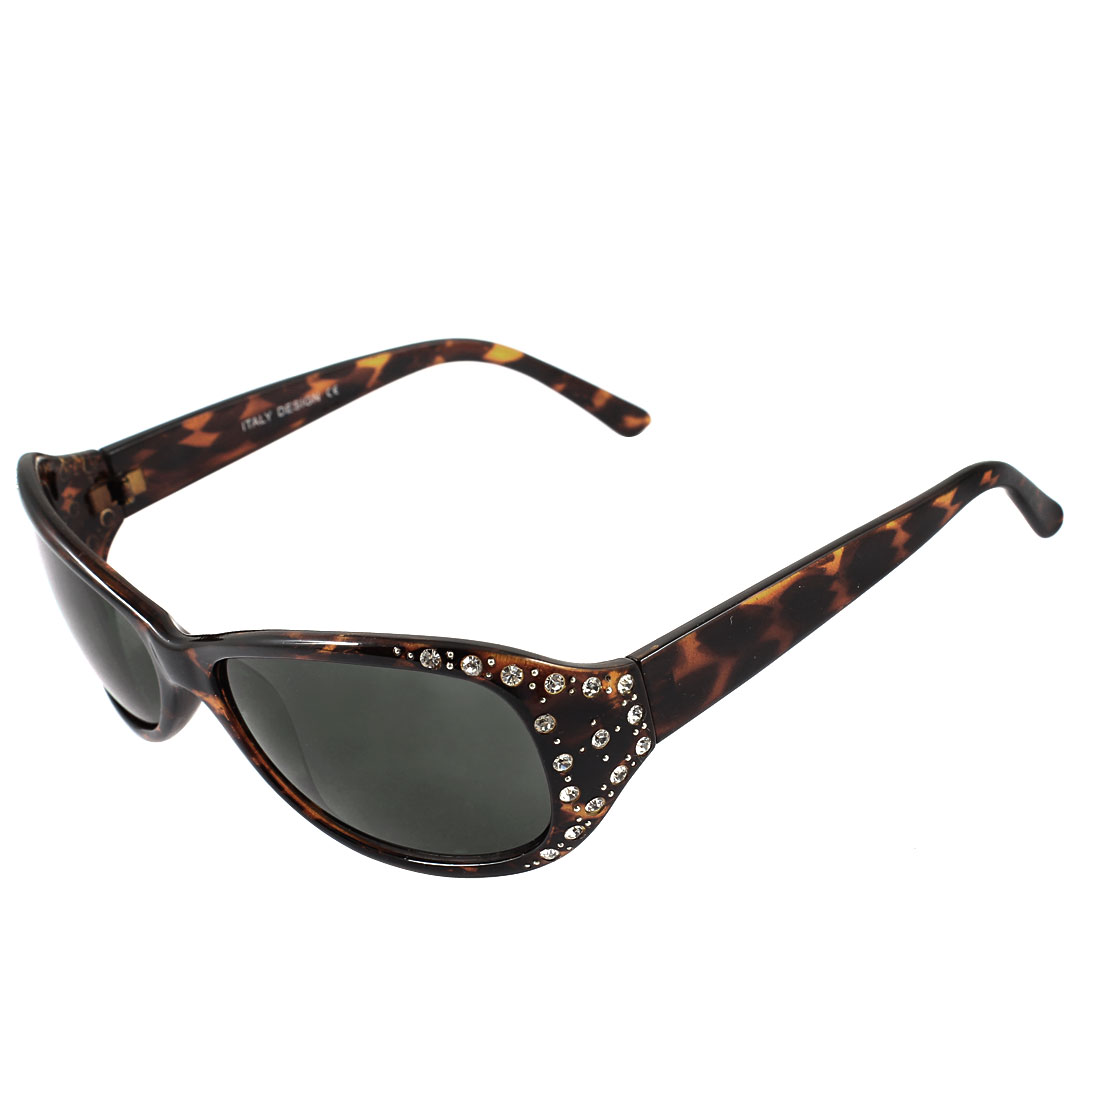 Woman Full Rim Rectangle Shape Gray Lens Plastic Rhinestone Inlaid Sunglasses Sun Glasses Dark Brown